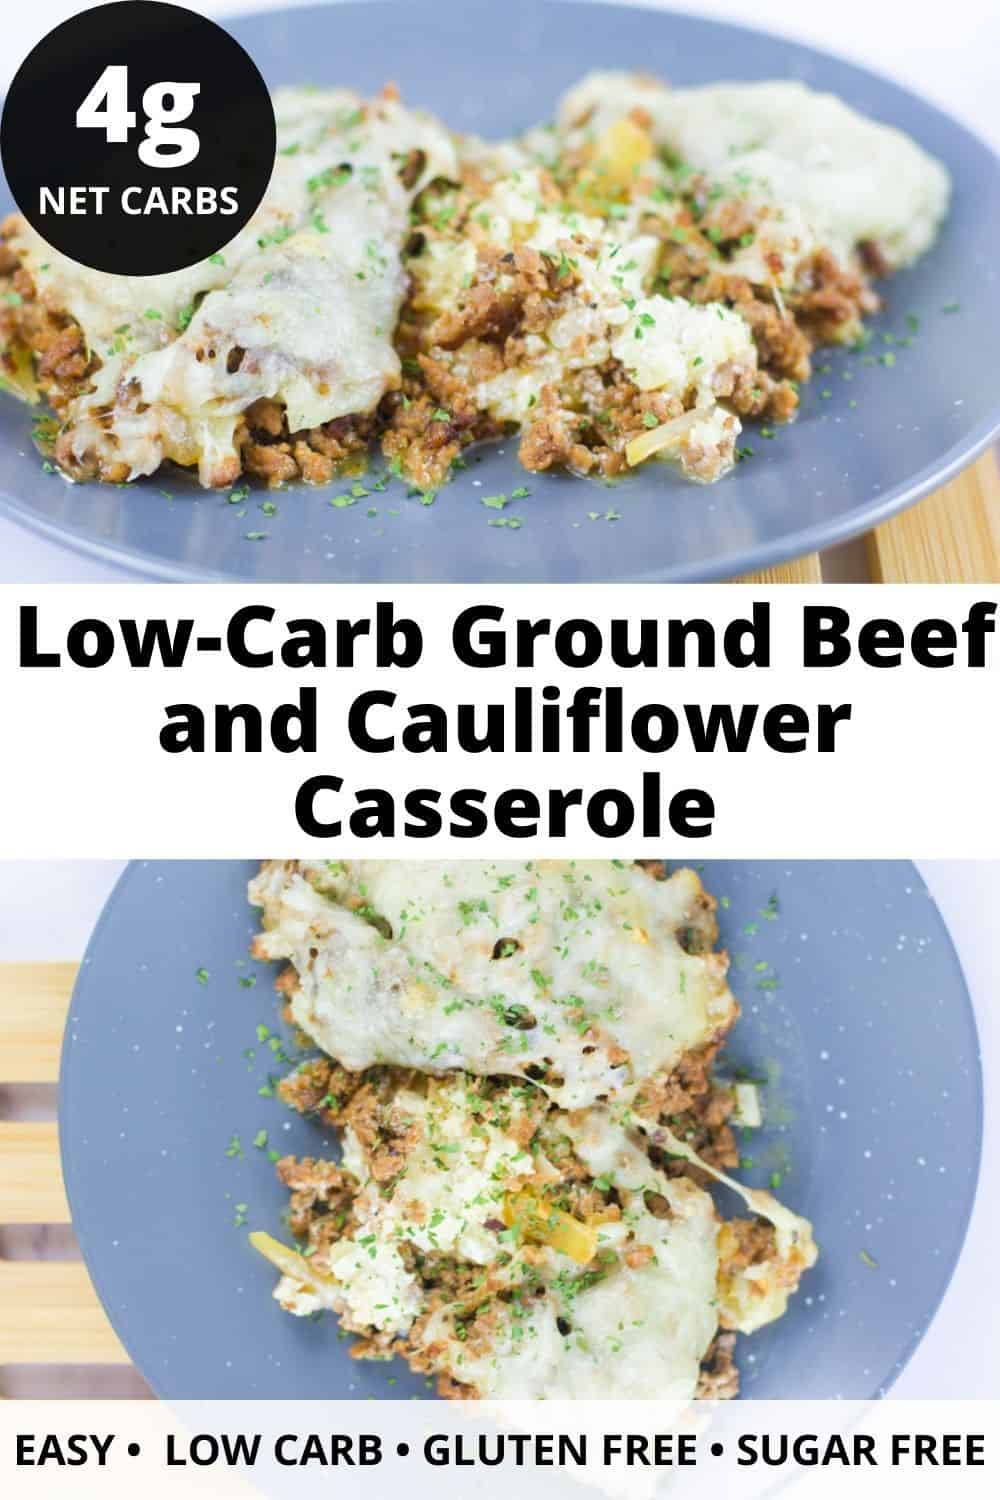 Low-Carb Ground Beef and Cauliflower Casserole